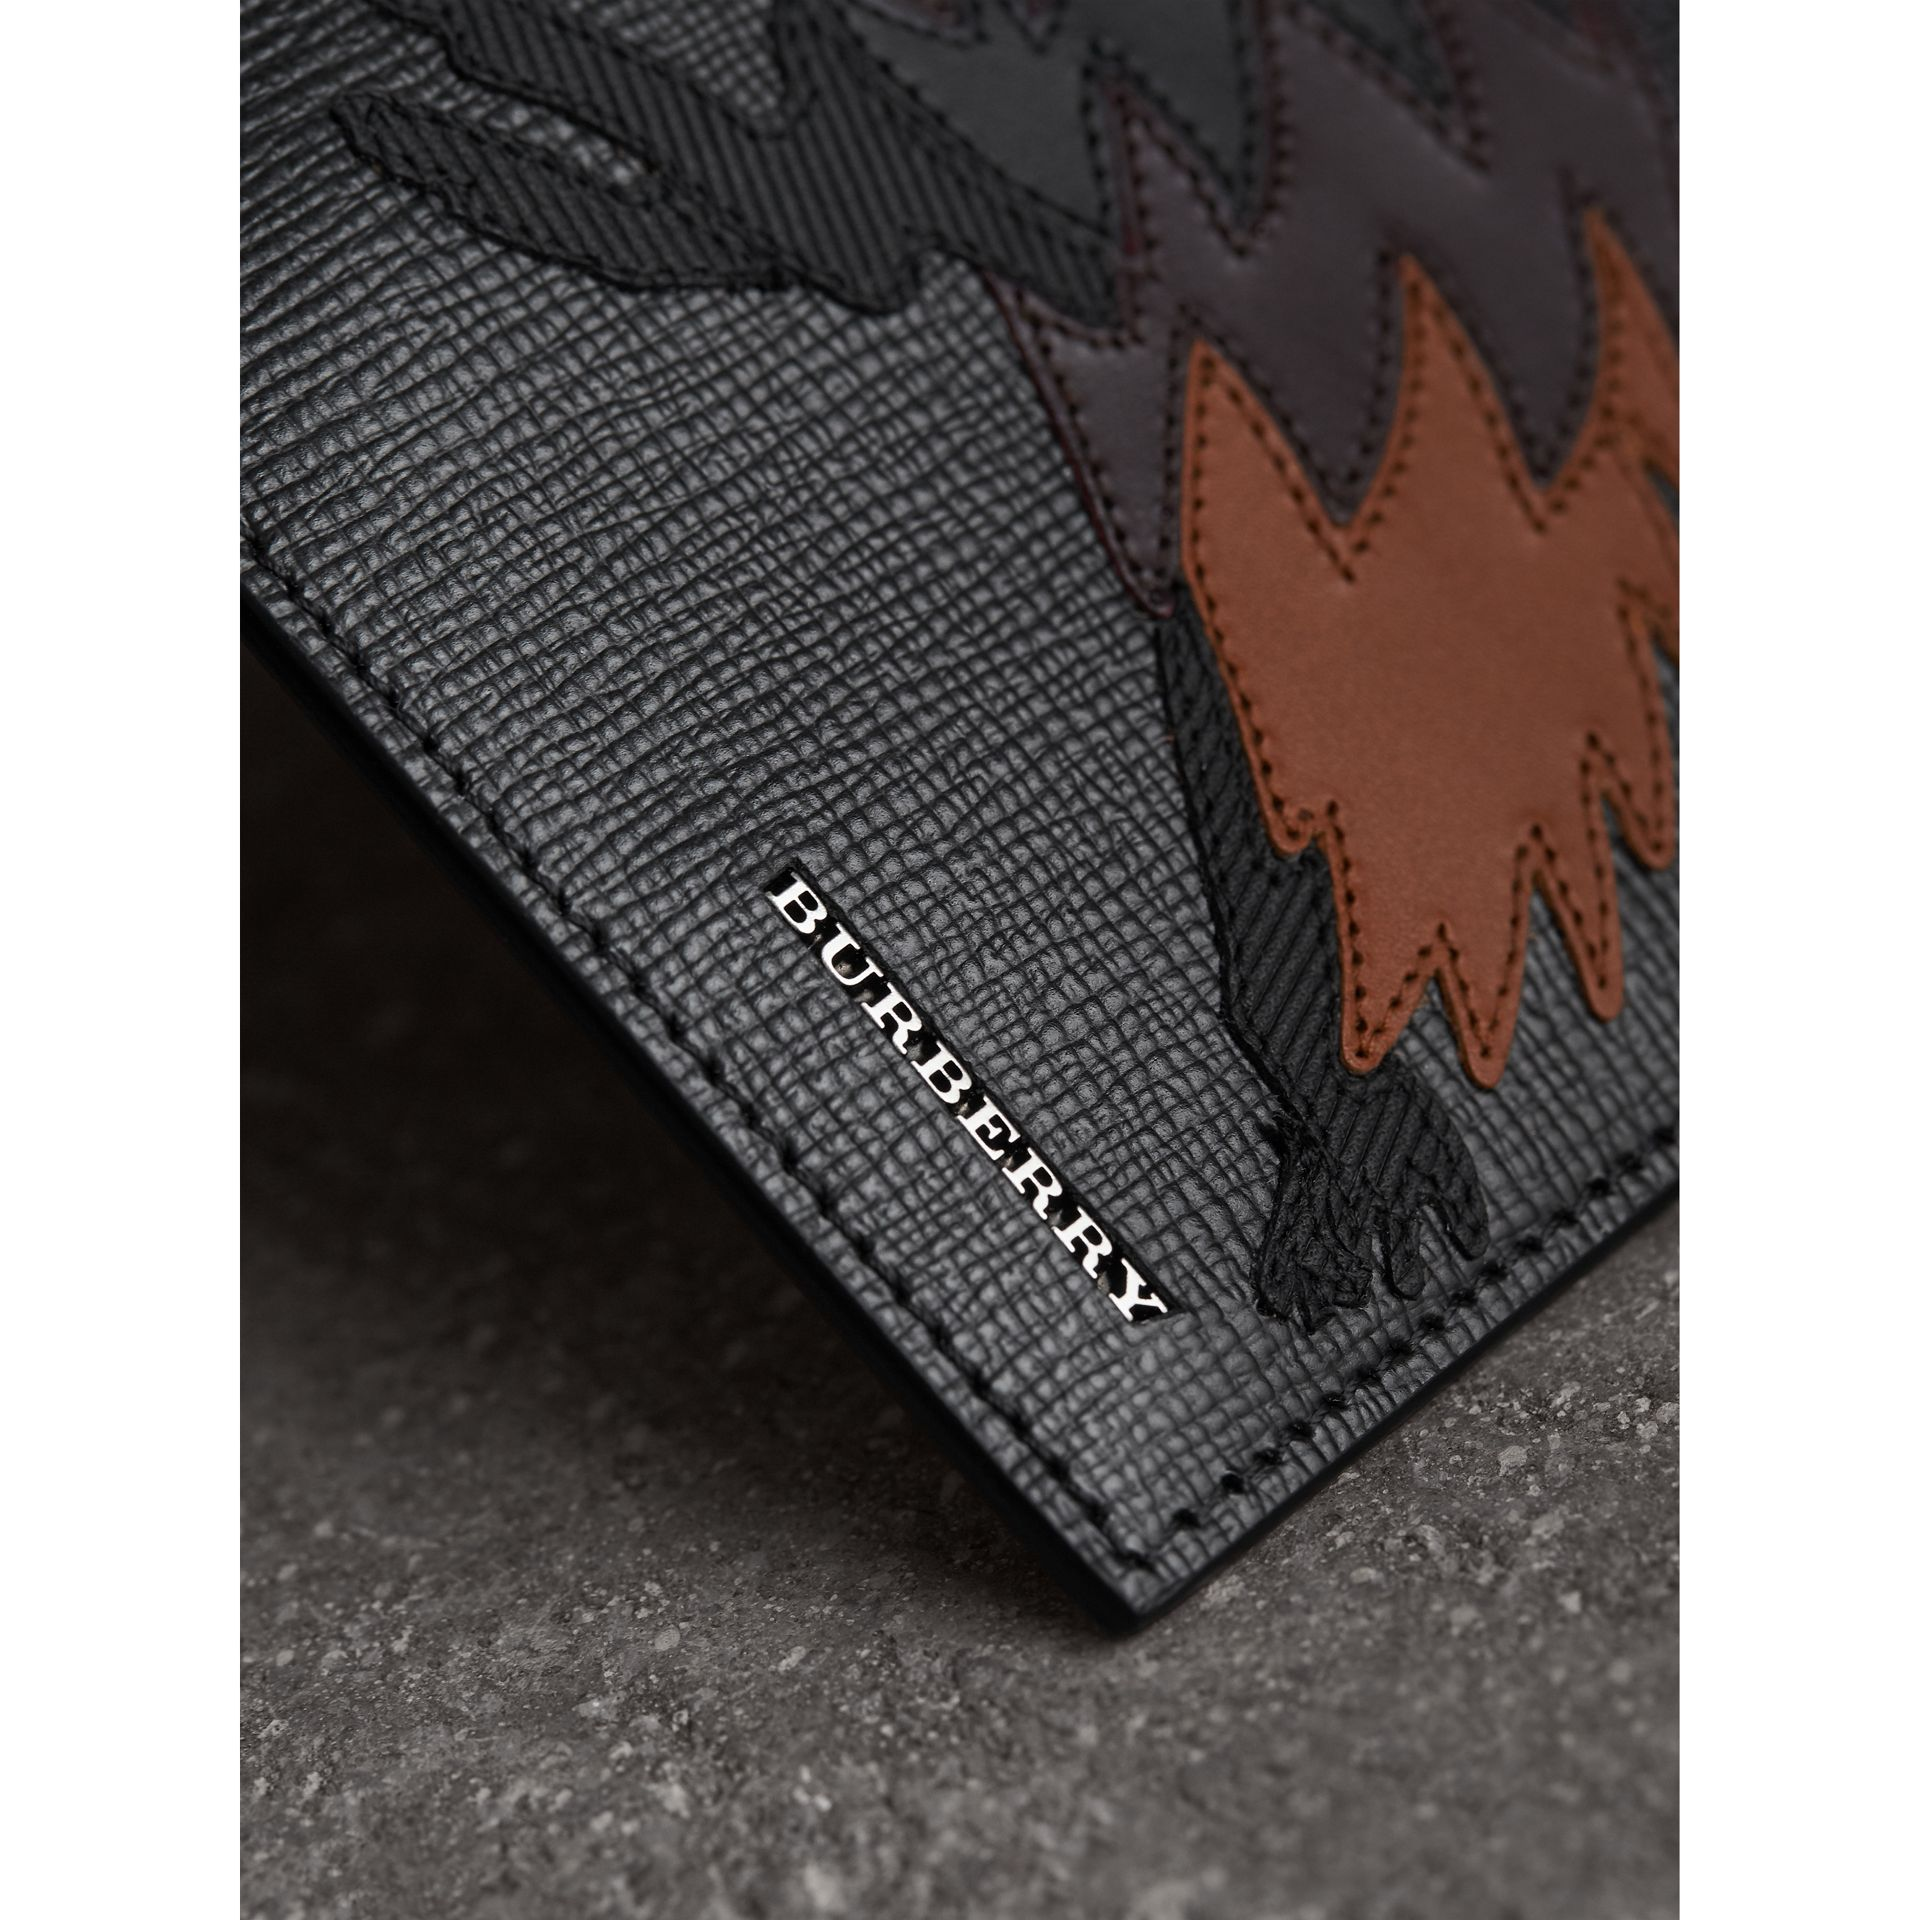 Beasts Motif Leather International Bifold Wallet in Black - Men | Burberry Hong Kong - gallery image 2